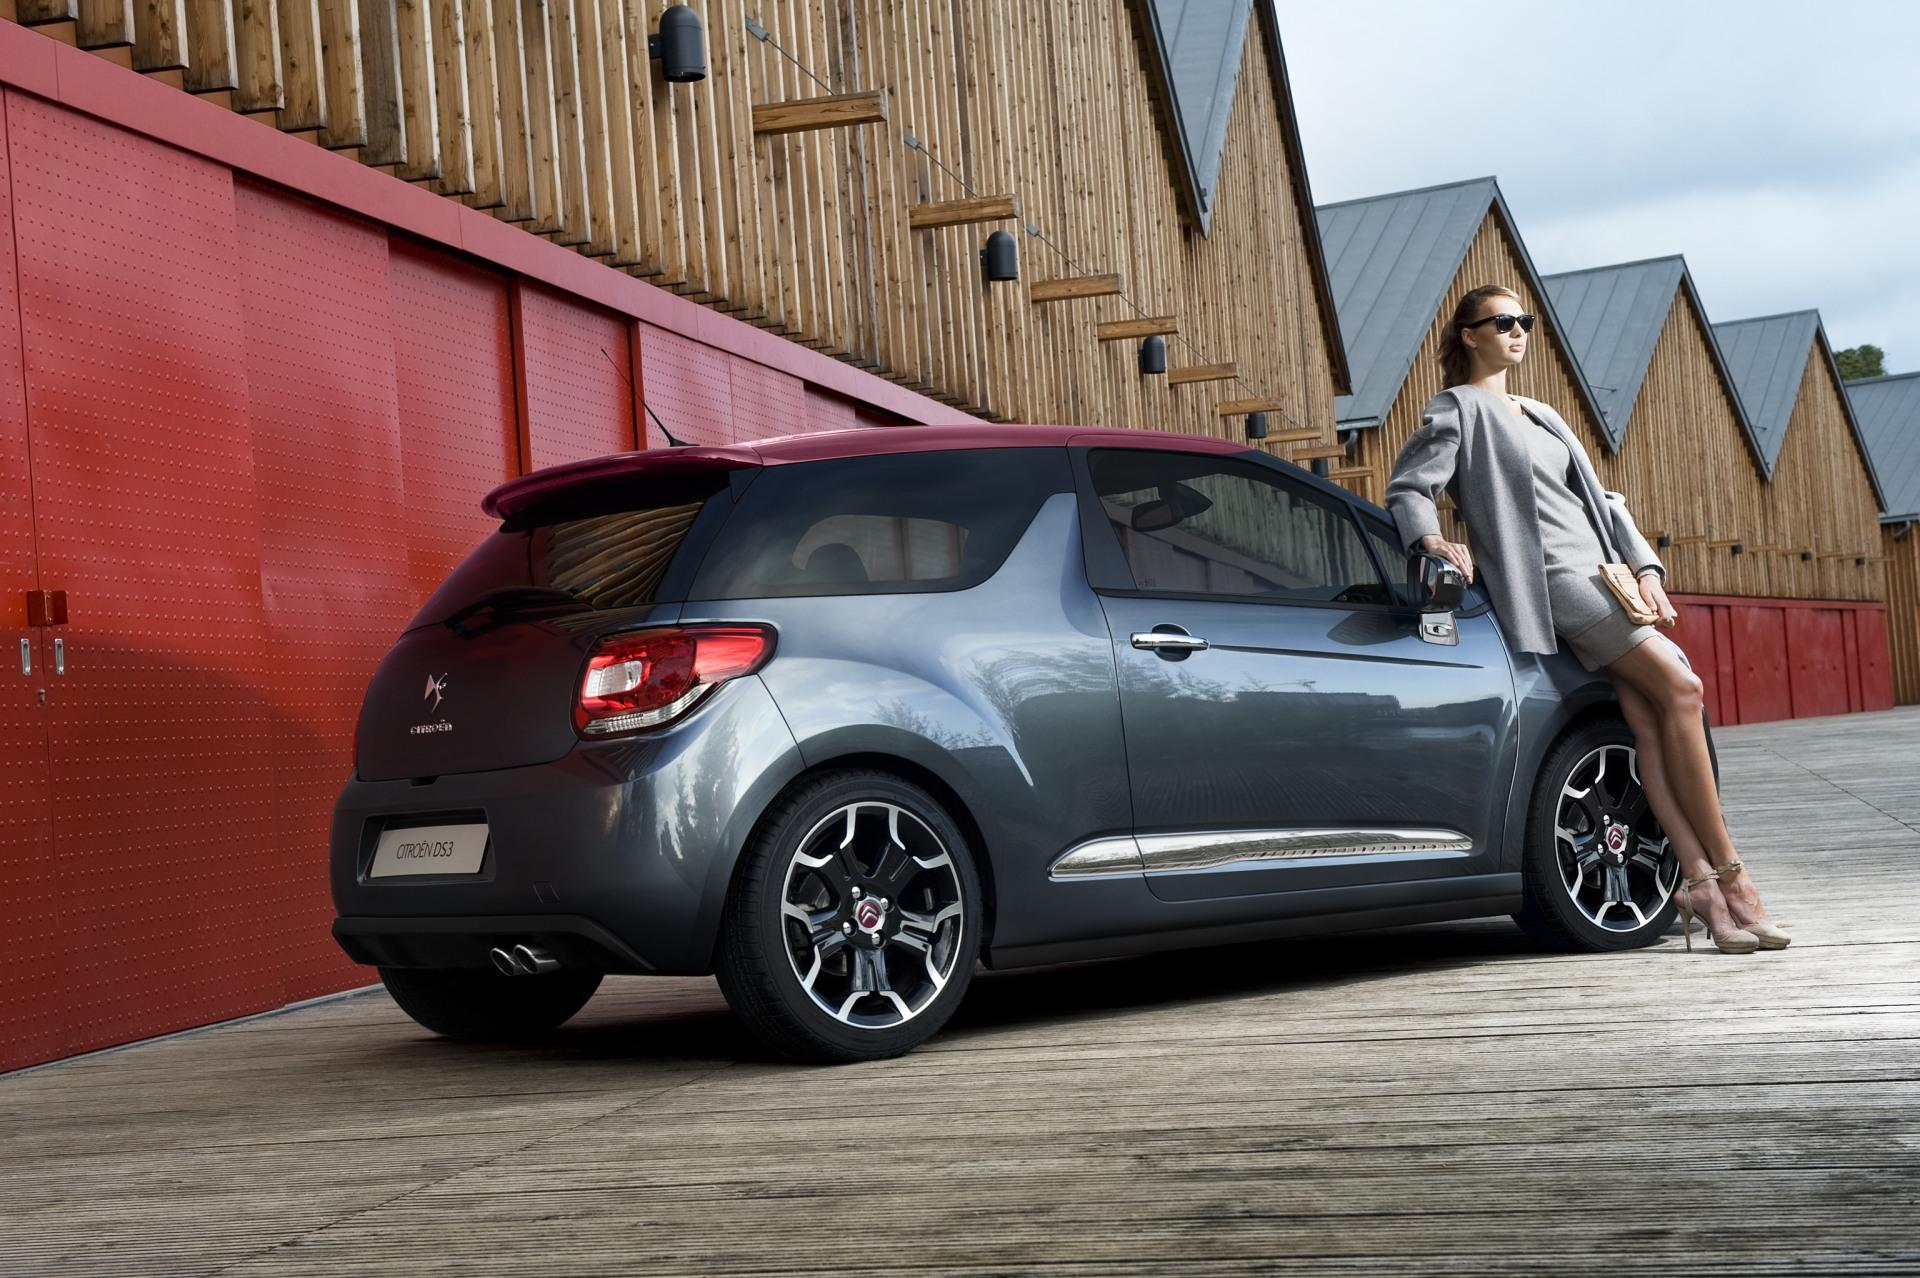 2011 citroen ds3 image collections hd cars wallpaper 2011 citroen ds3 images photo 2011 citroen ds3 image 02g 2011 citroen ds3 image vanachro image vanachro Images